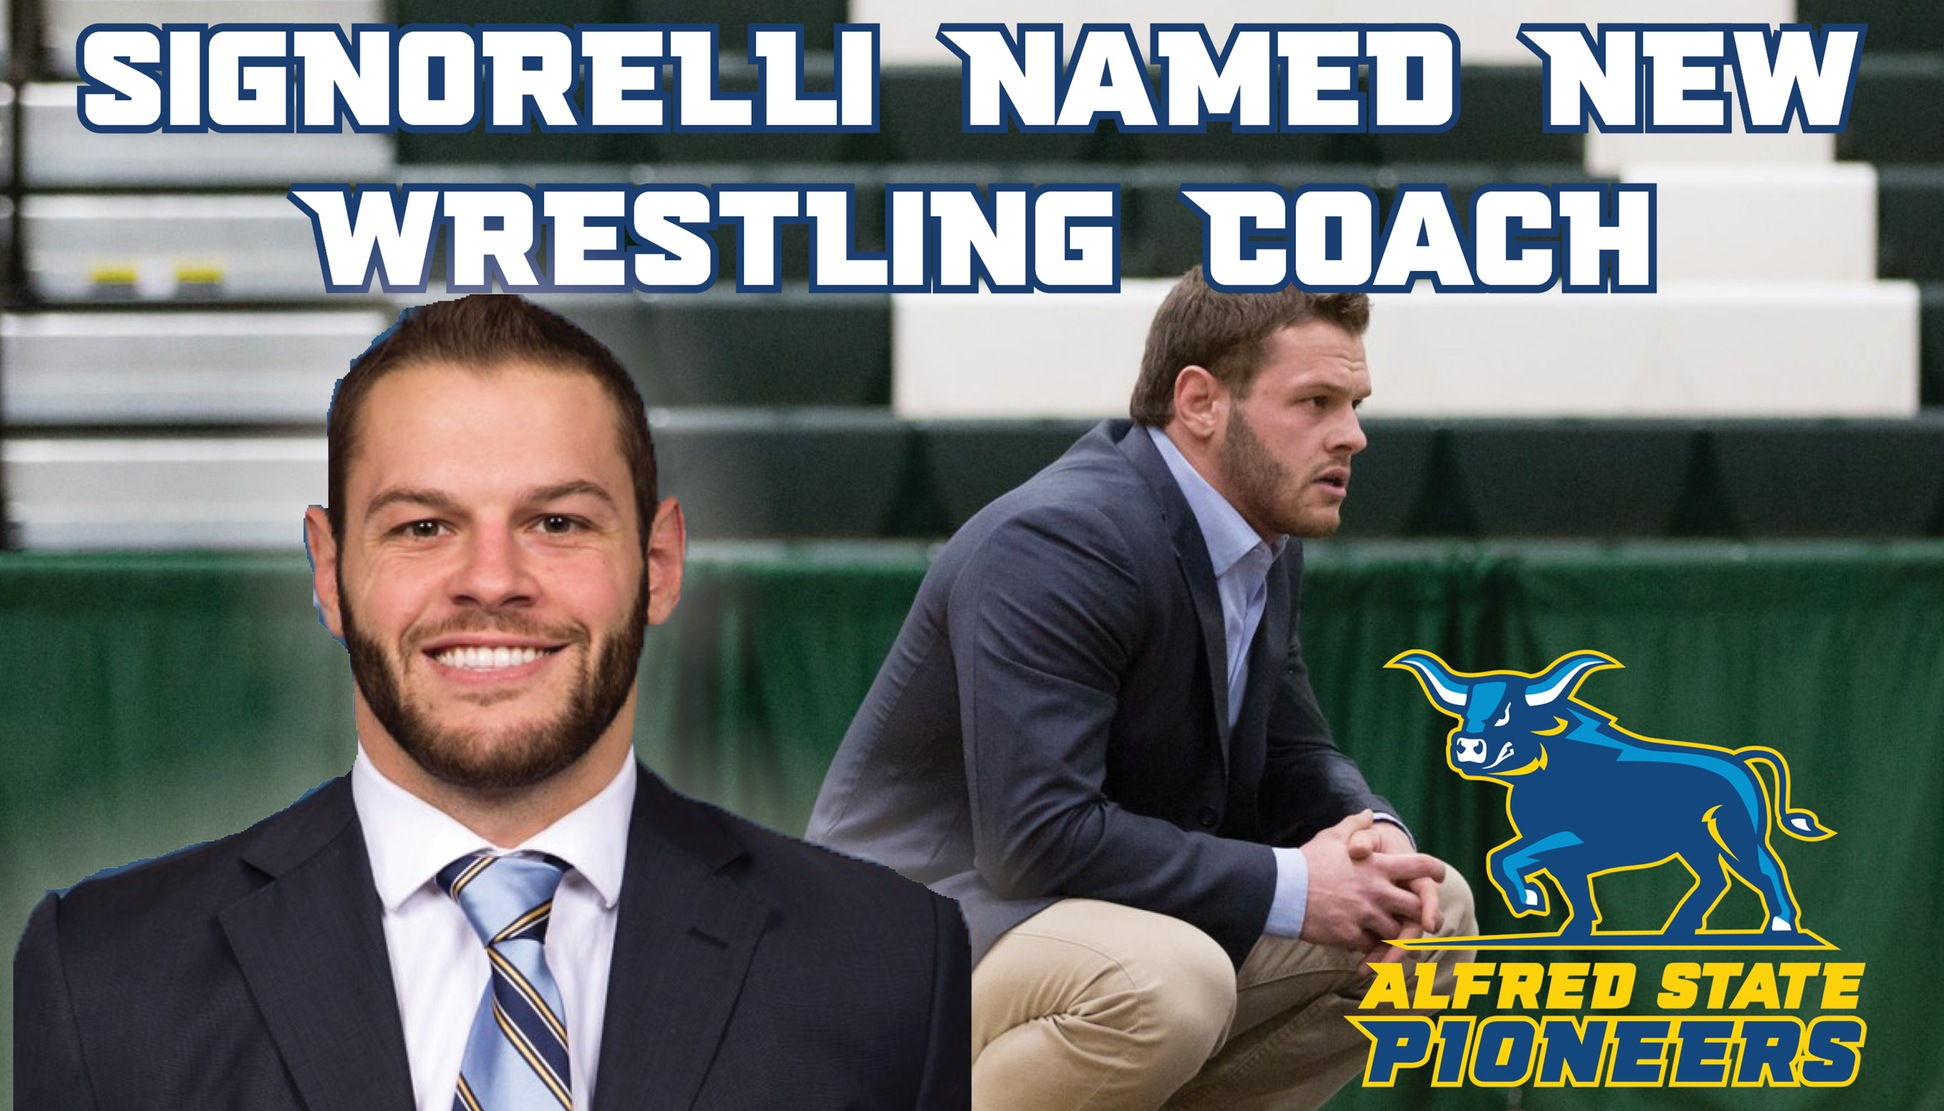 Signorelli Named New Wrestling Coach